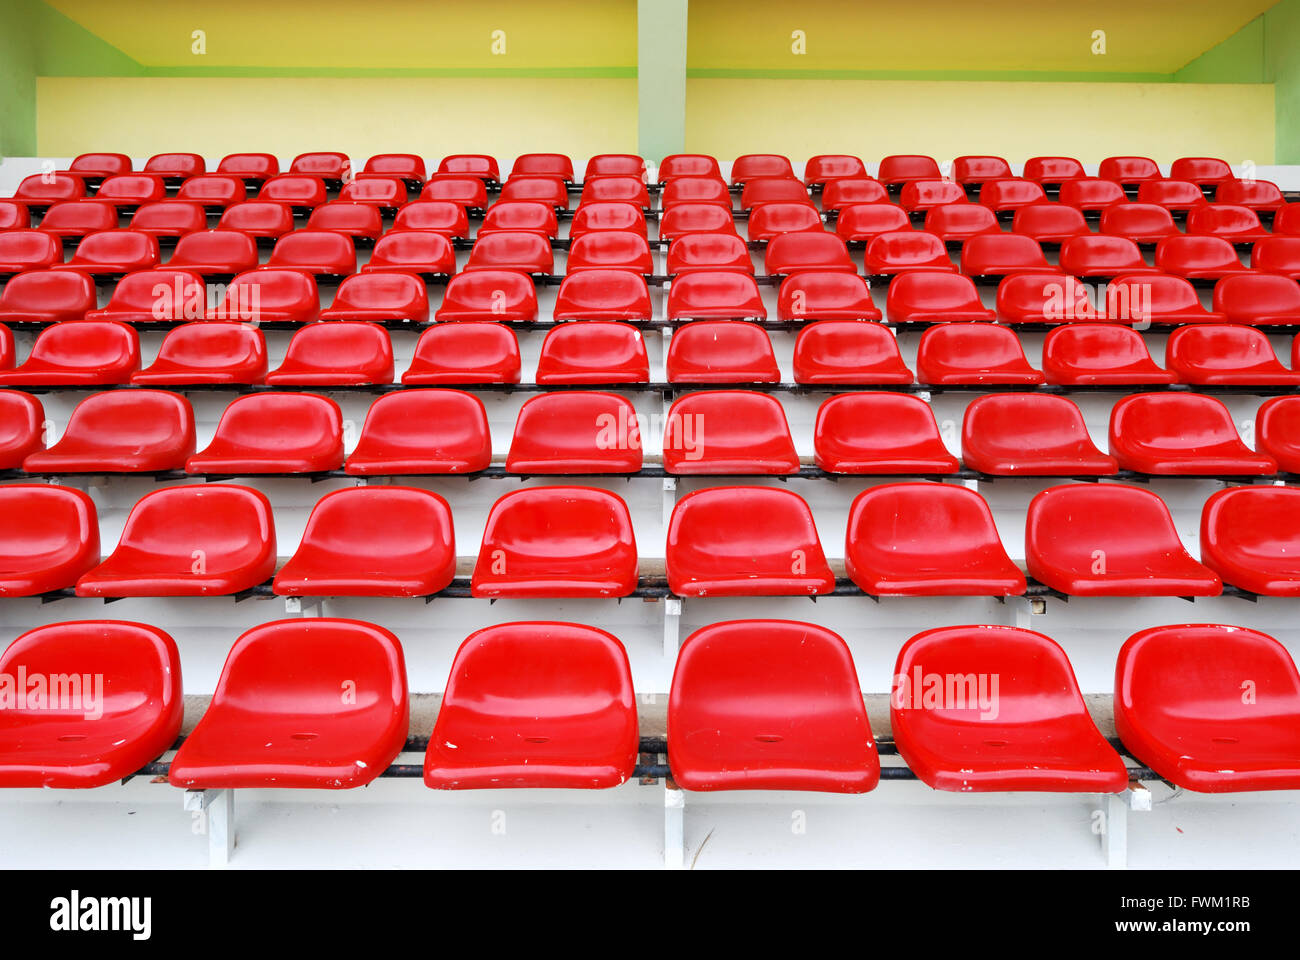 Red Bleachers In Sport Stadium - Stock Image